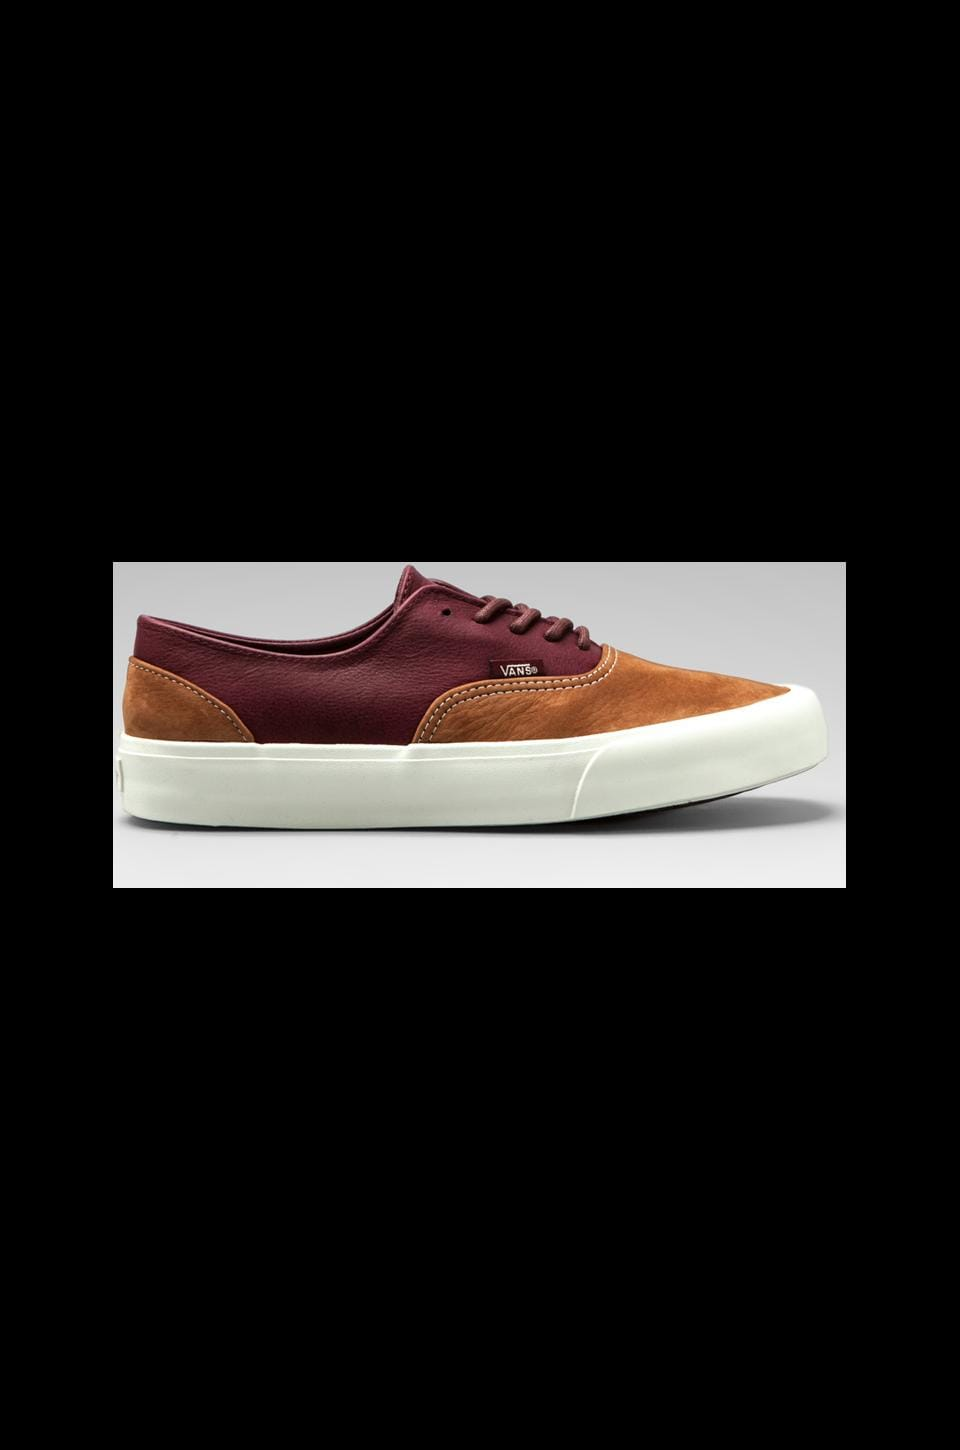 Vans California Era Decon in Brown/Port Royal